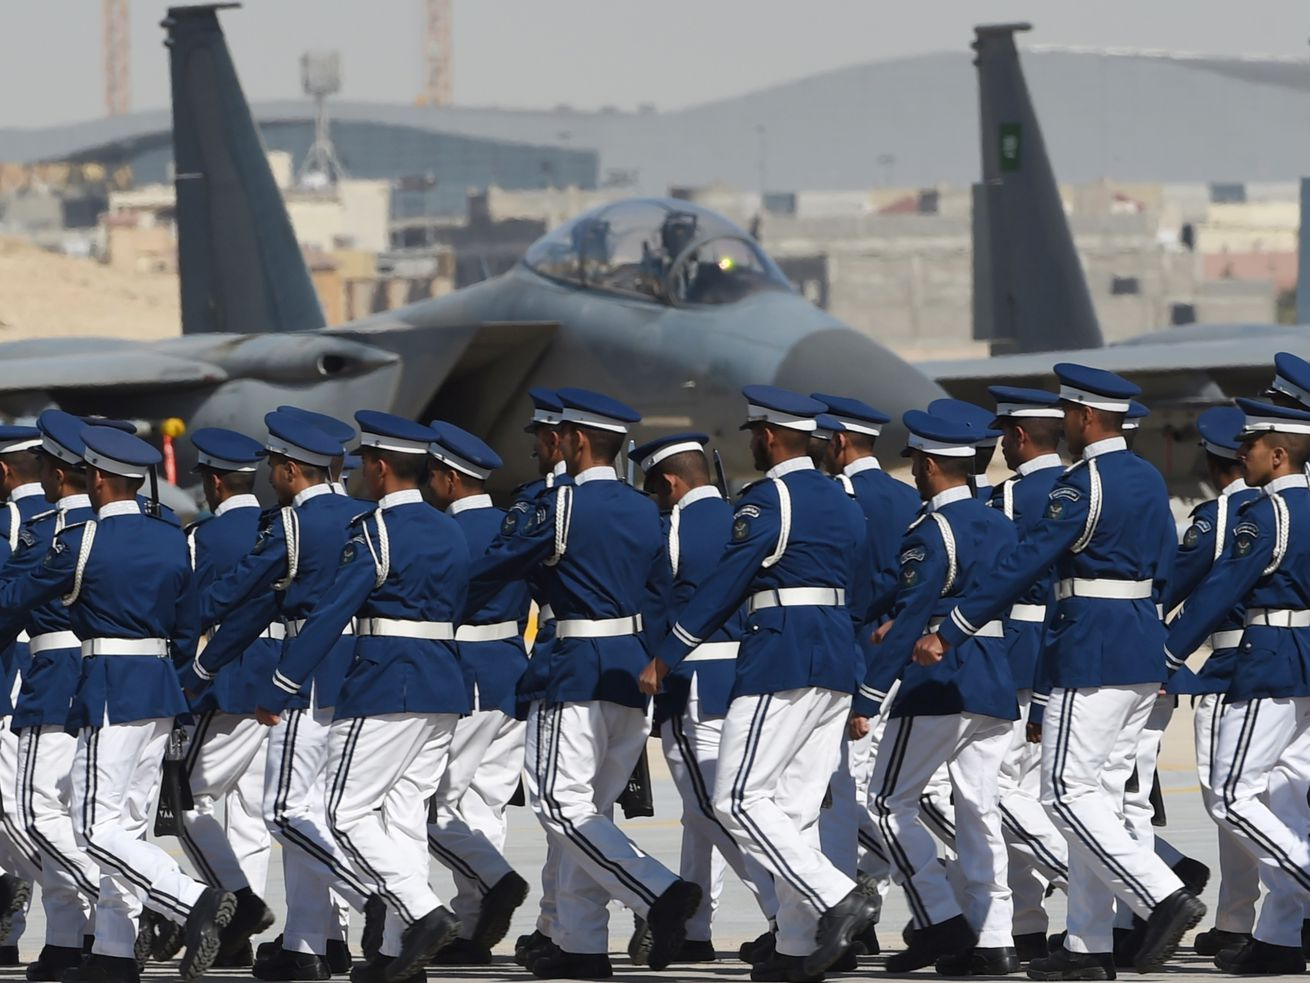 Newly graduated Saudi air force officers march in front of F-15 fighter jets at King Salman airbase in Riyadh on January 25, 2017. American defense companies sell fighter jets, missiles, and other equipment to the Saudi military.